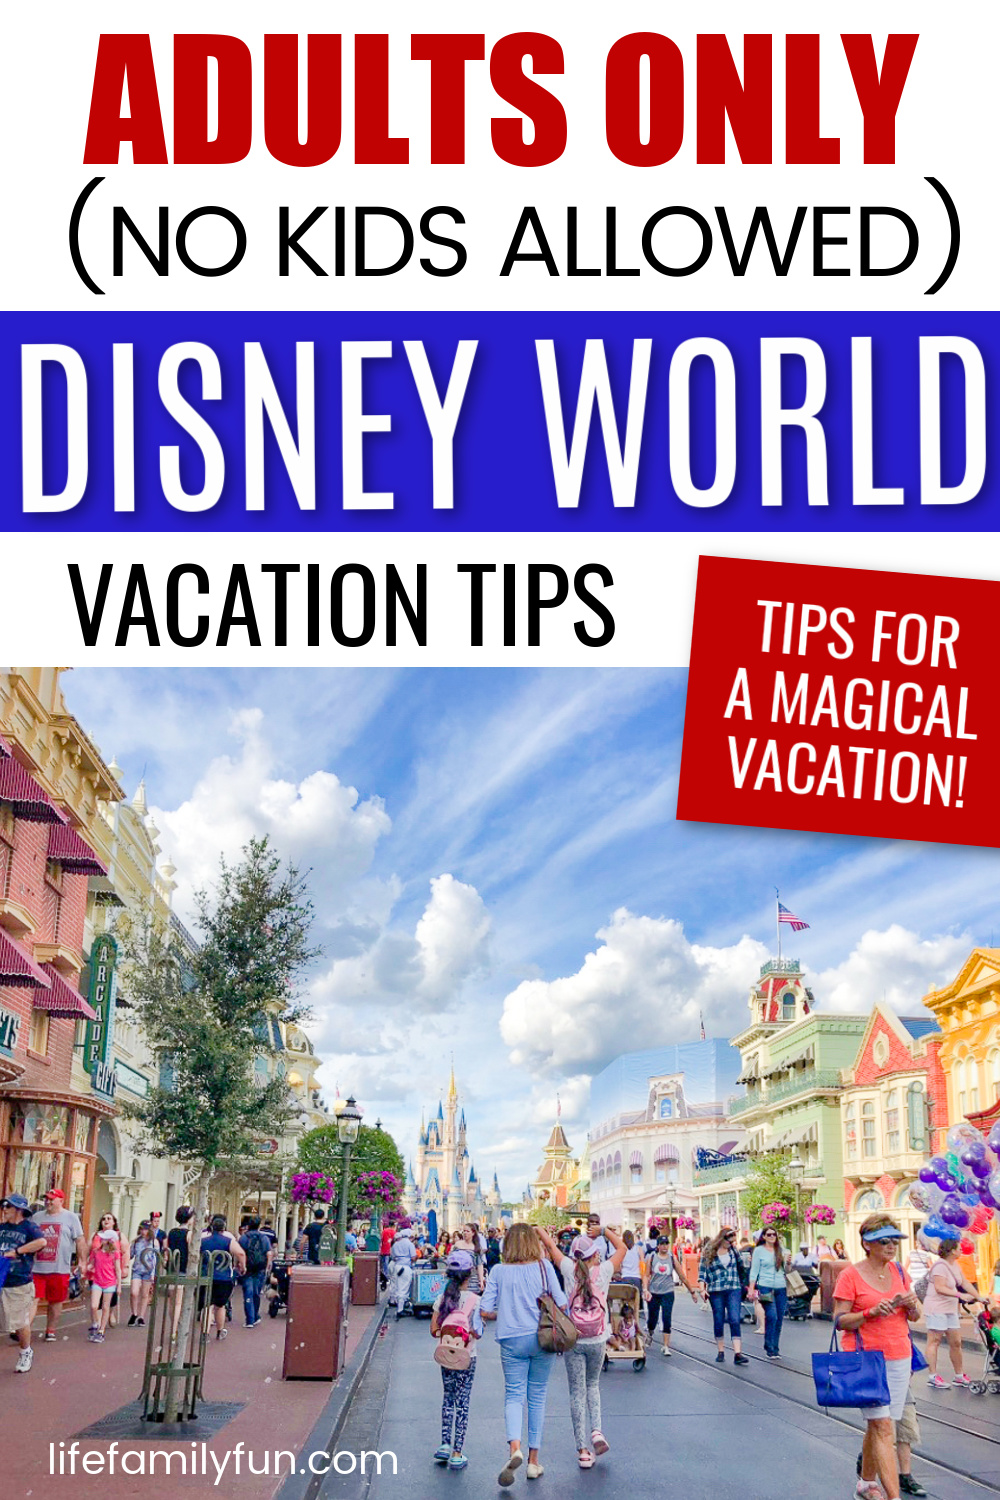 Adults Only for Disney World - Pin for Pinterest